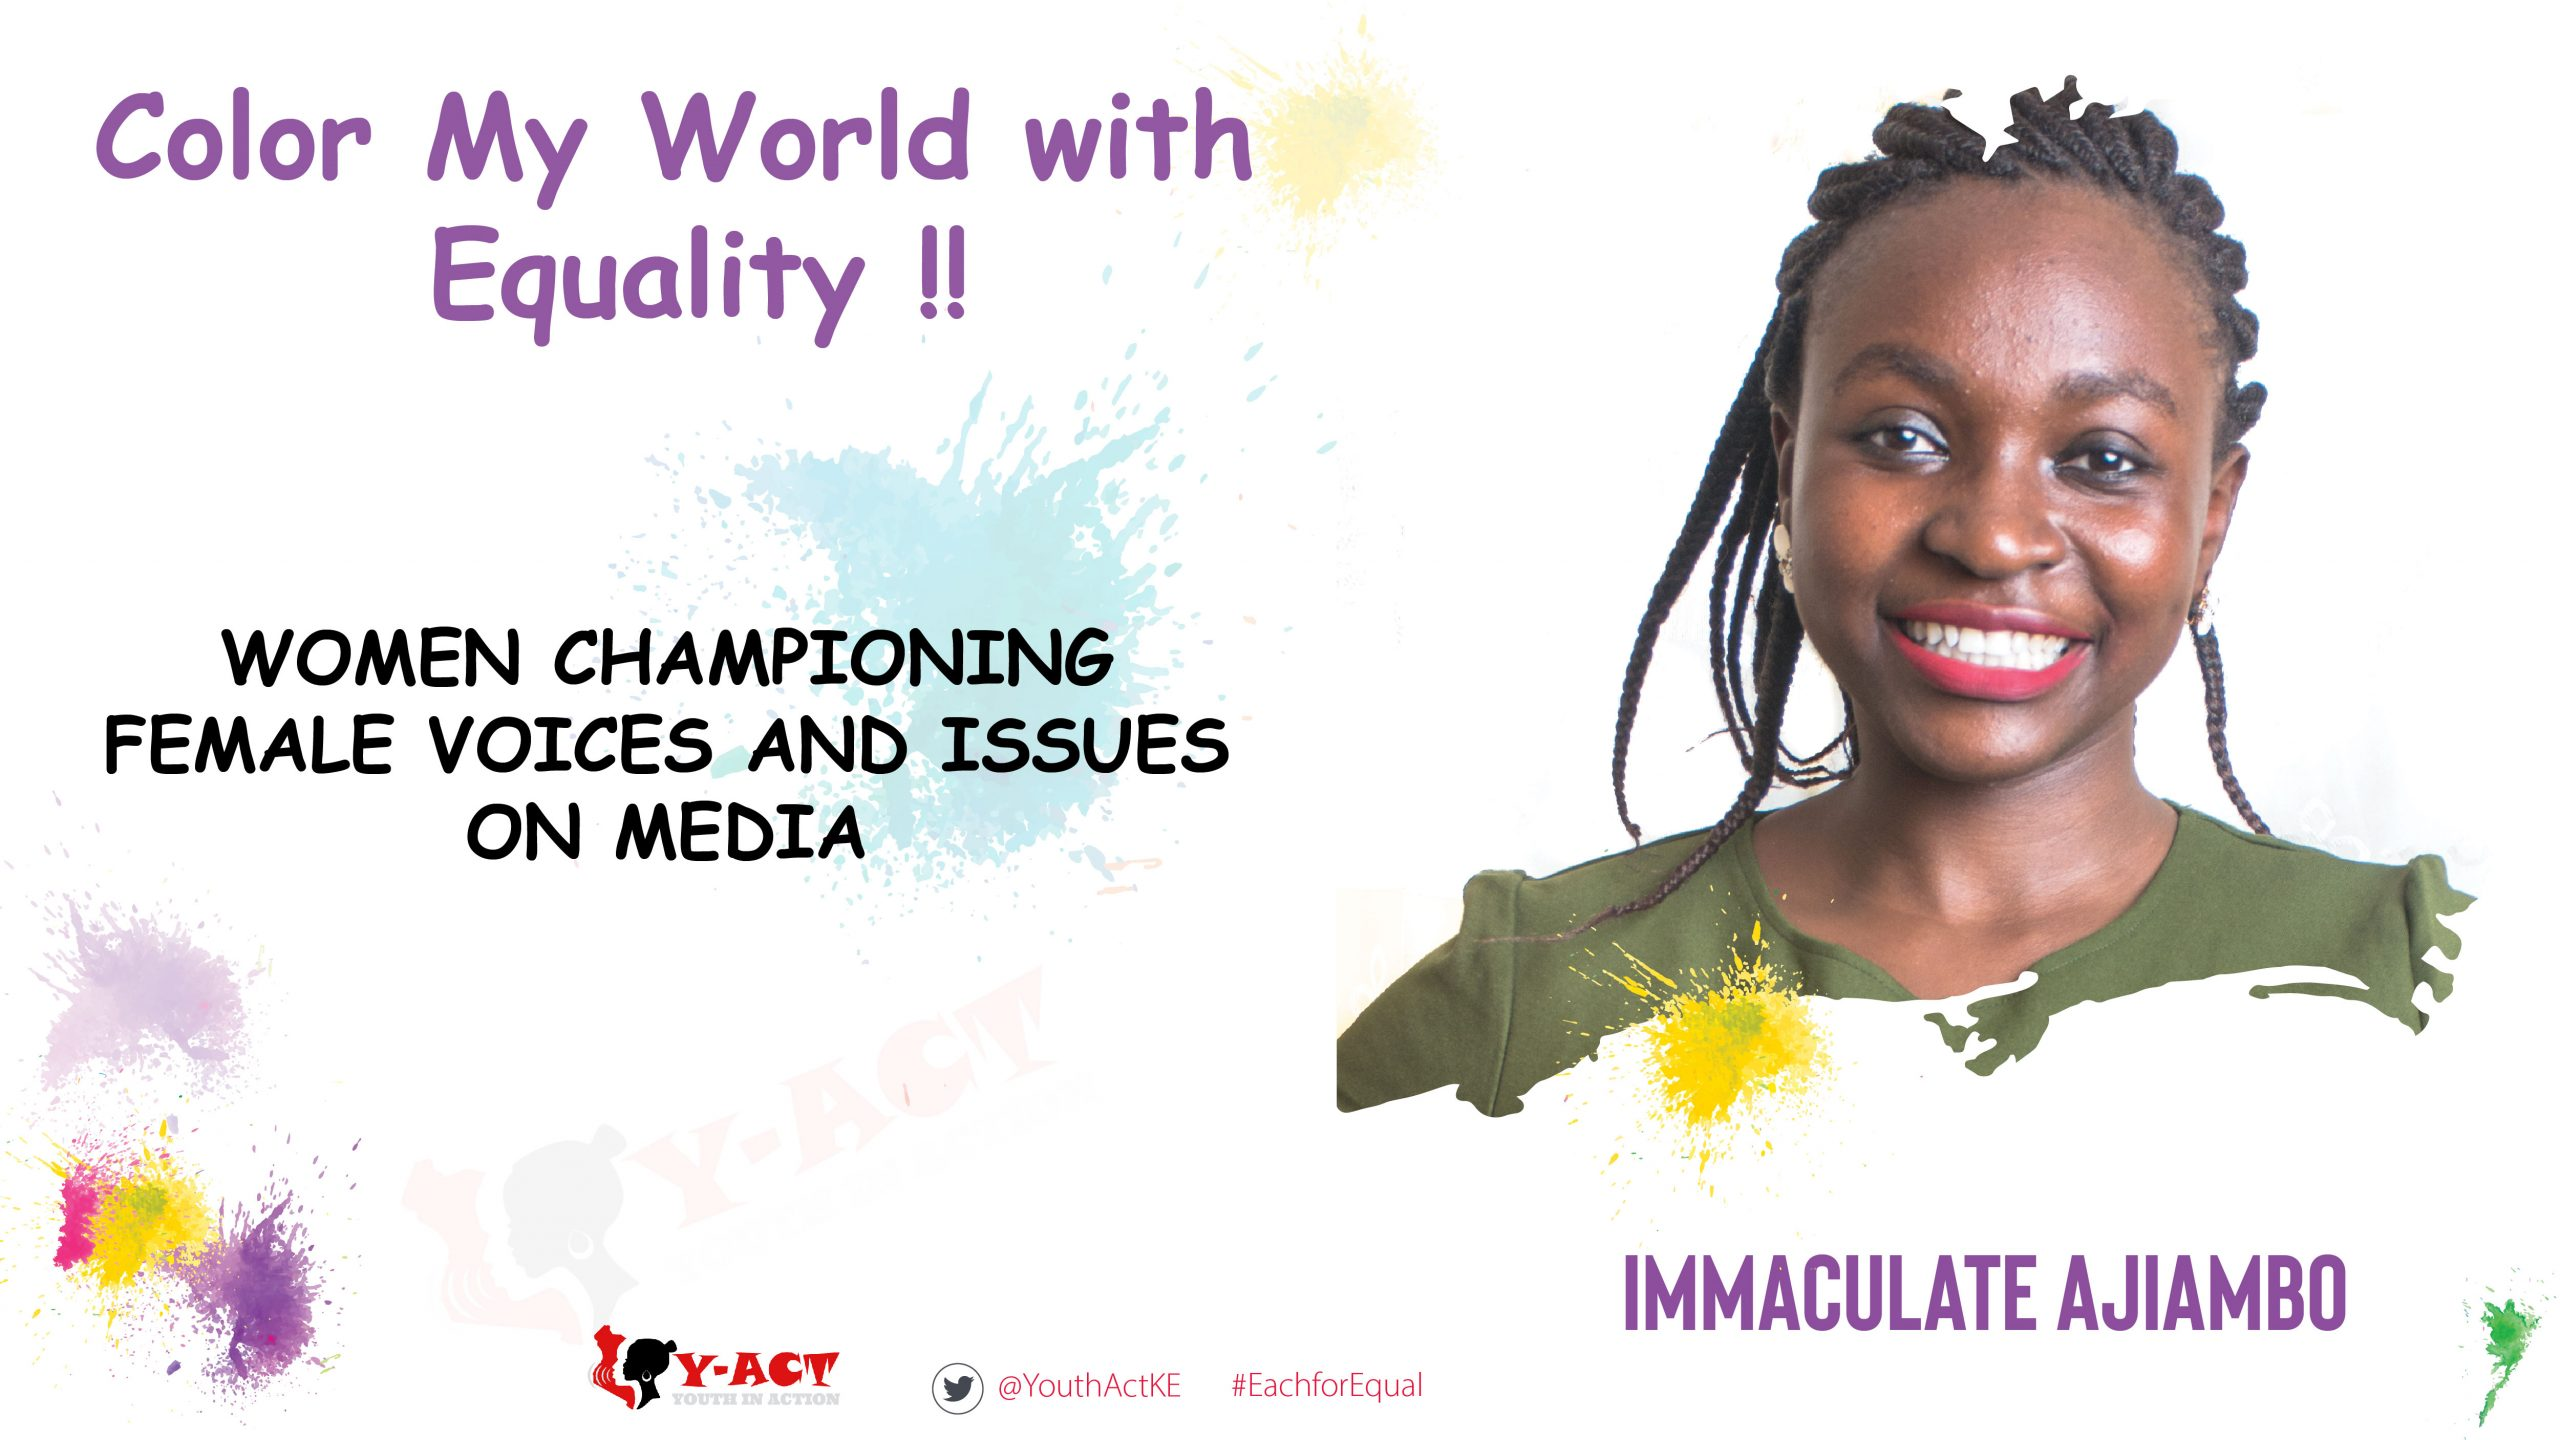 IMMACULATE AJIAMBO – COLOR MY WORLD COMPETITION WINNER- WOMEN CHAMPIONING FEMALE VOICES AND ISSUES ON MEDIA.